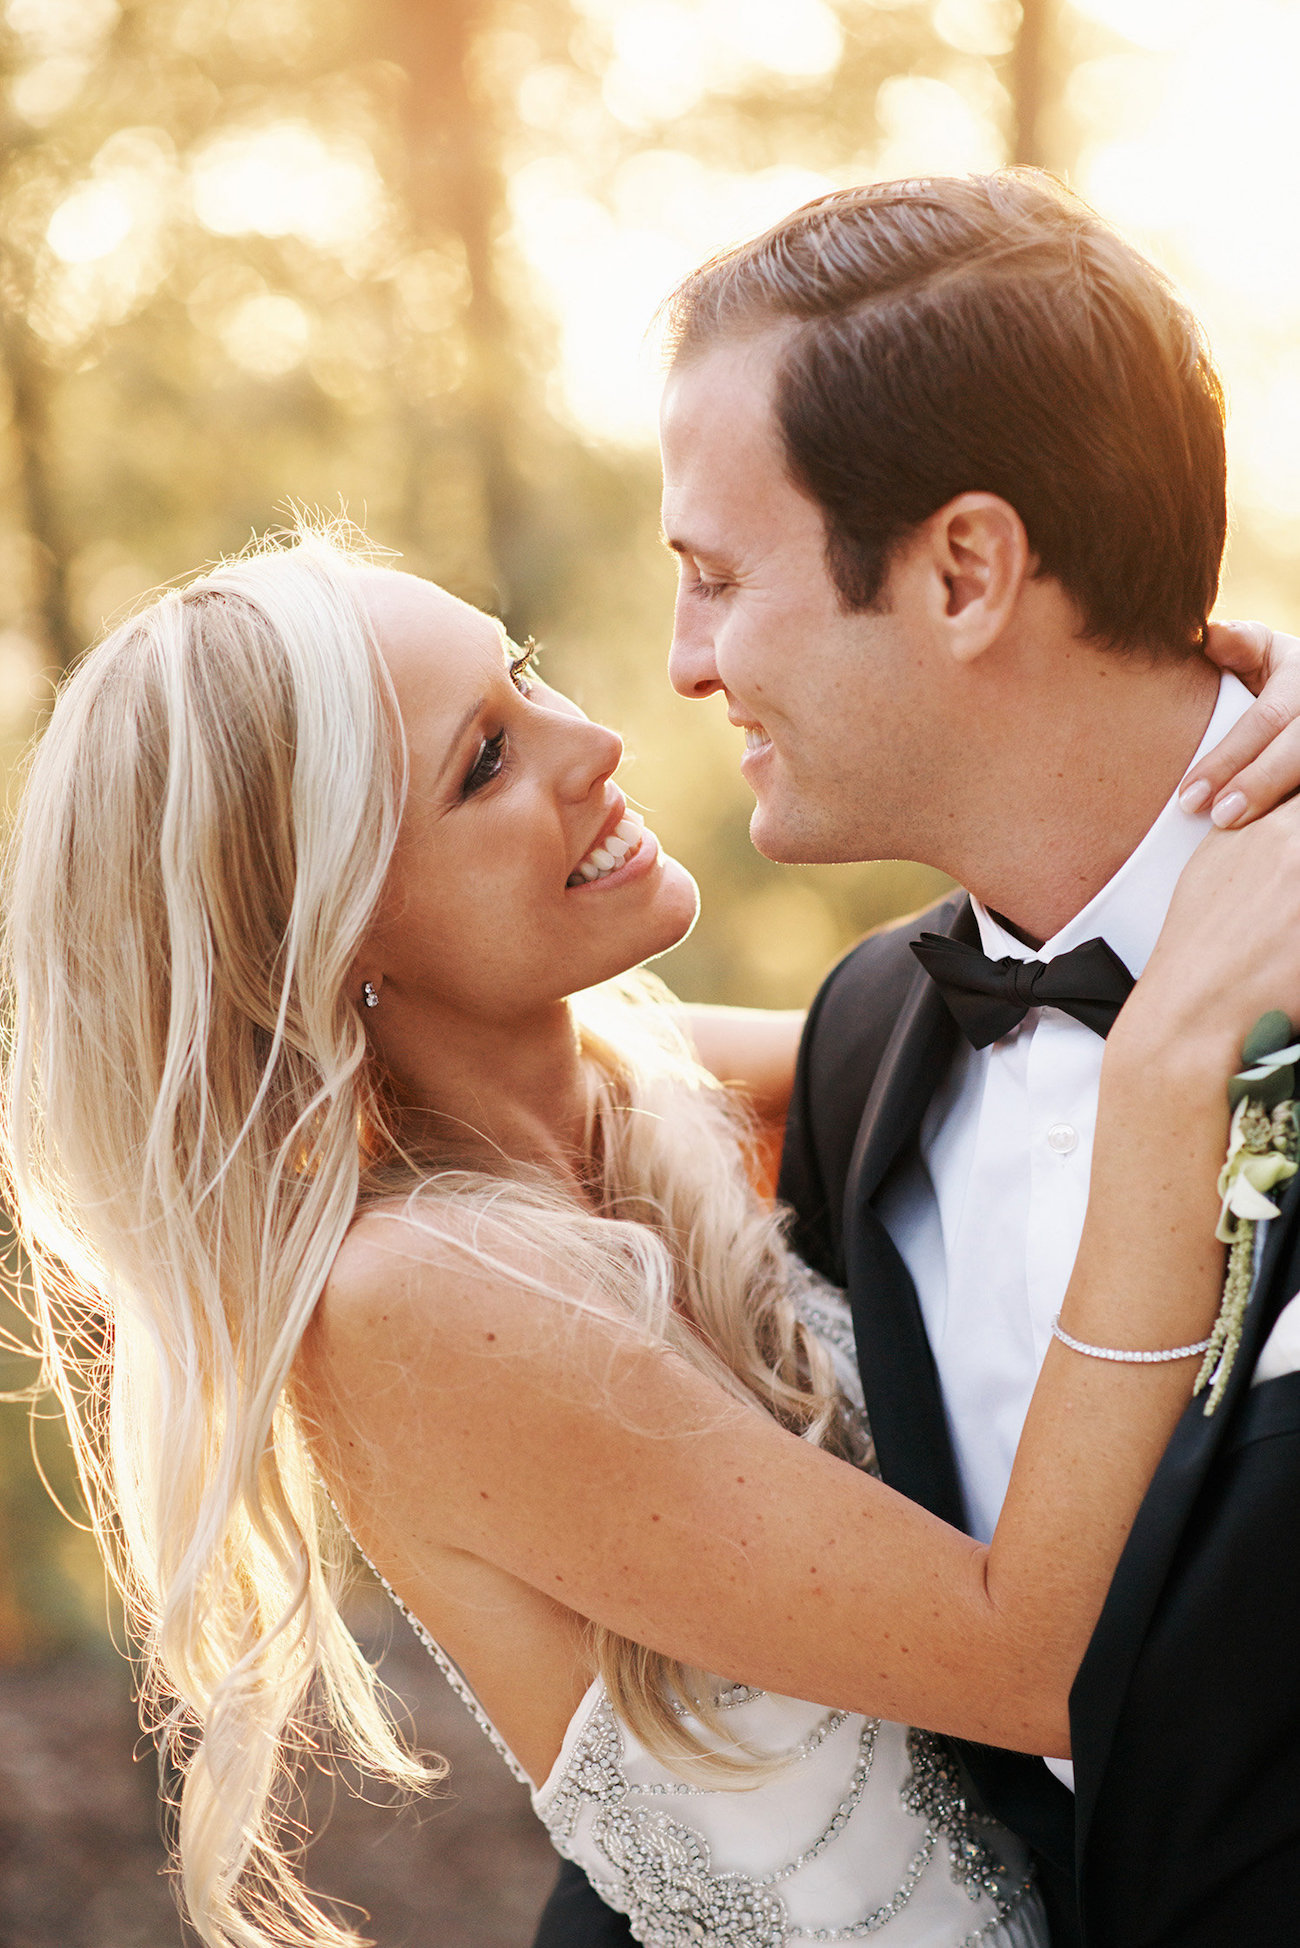 Romantic Portrait of Bride and Groom   Image: Knit Together Photography